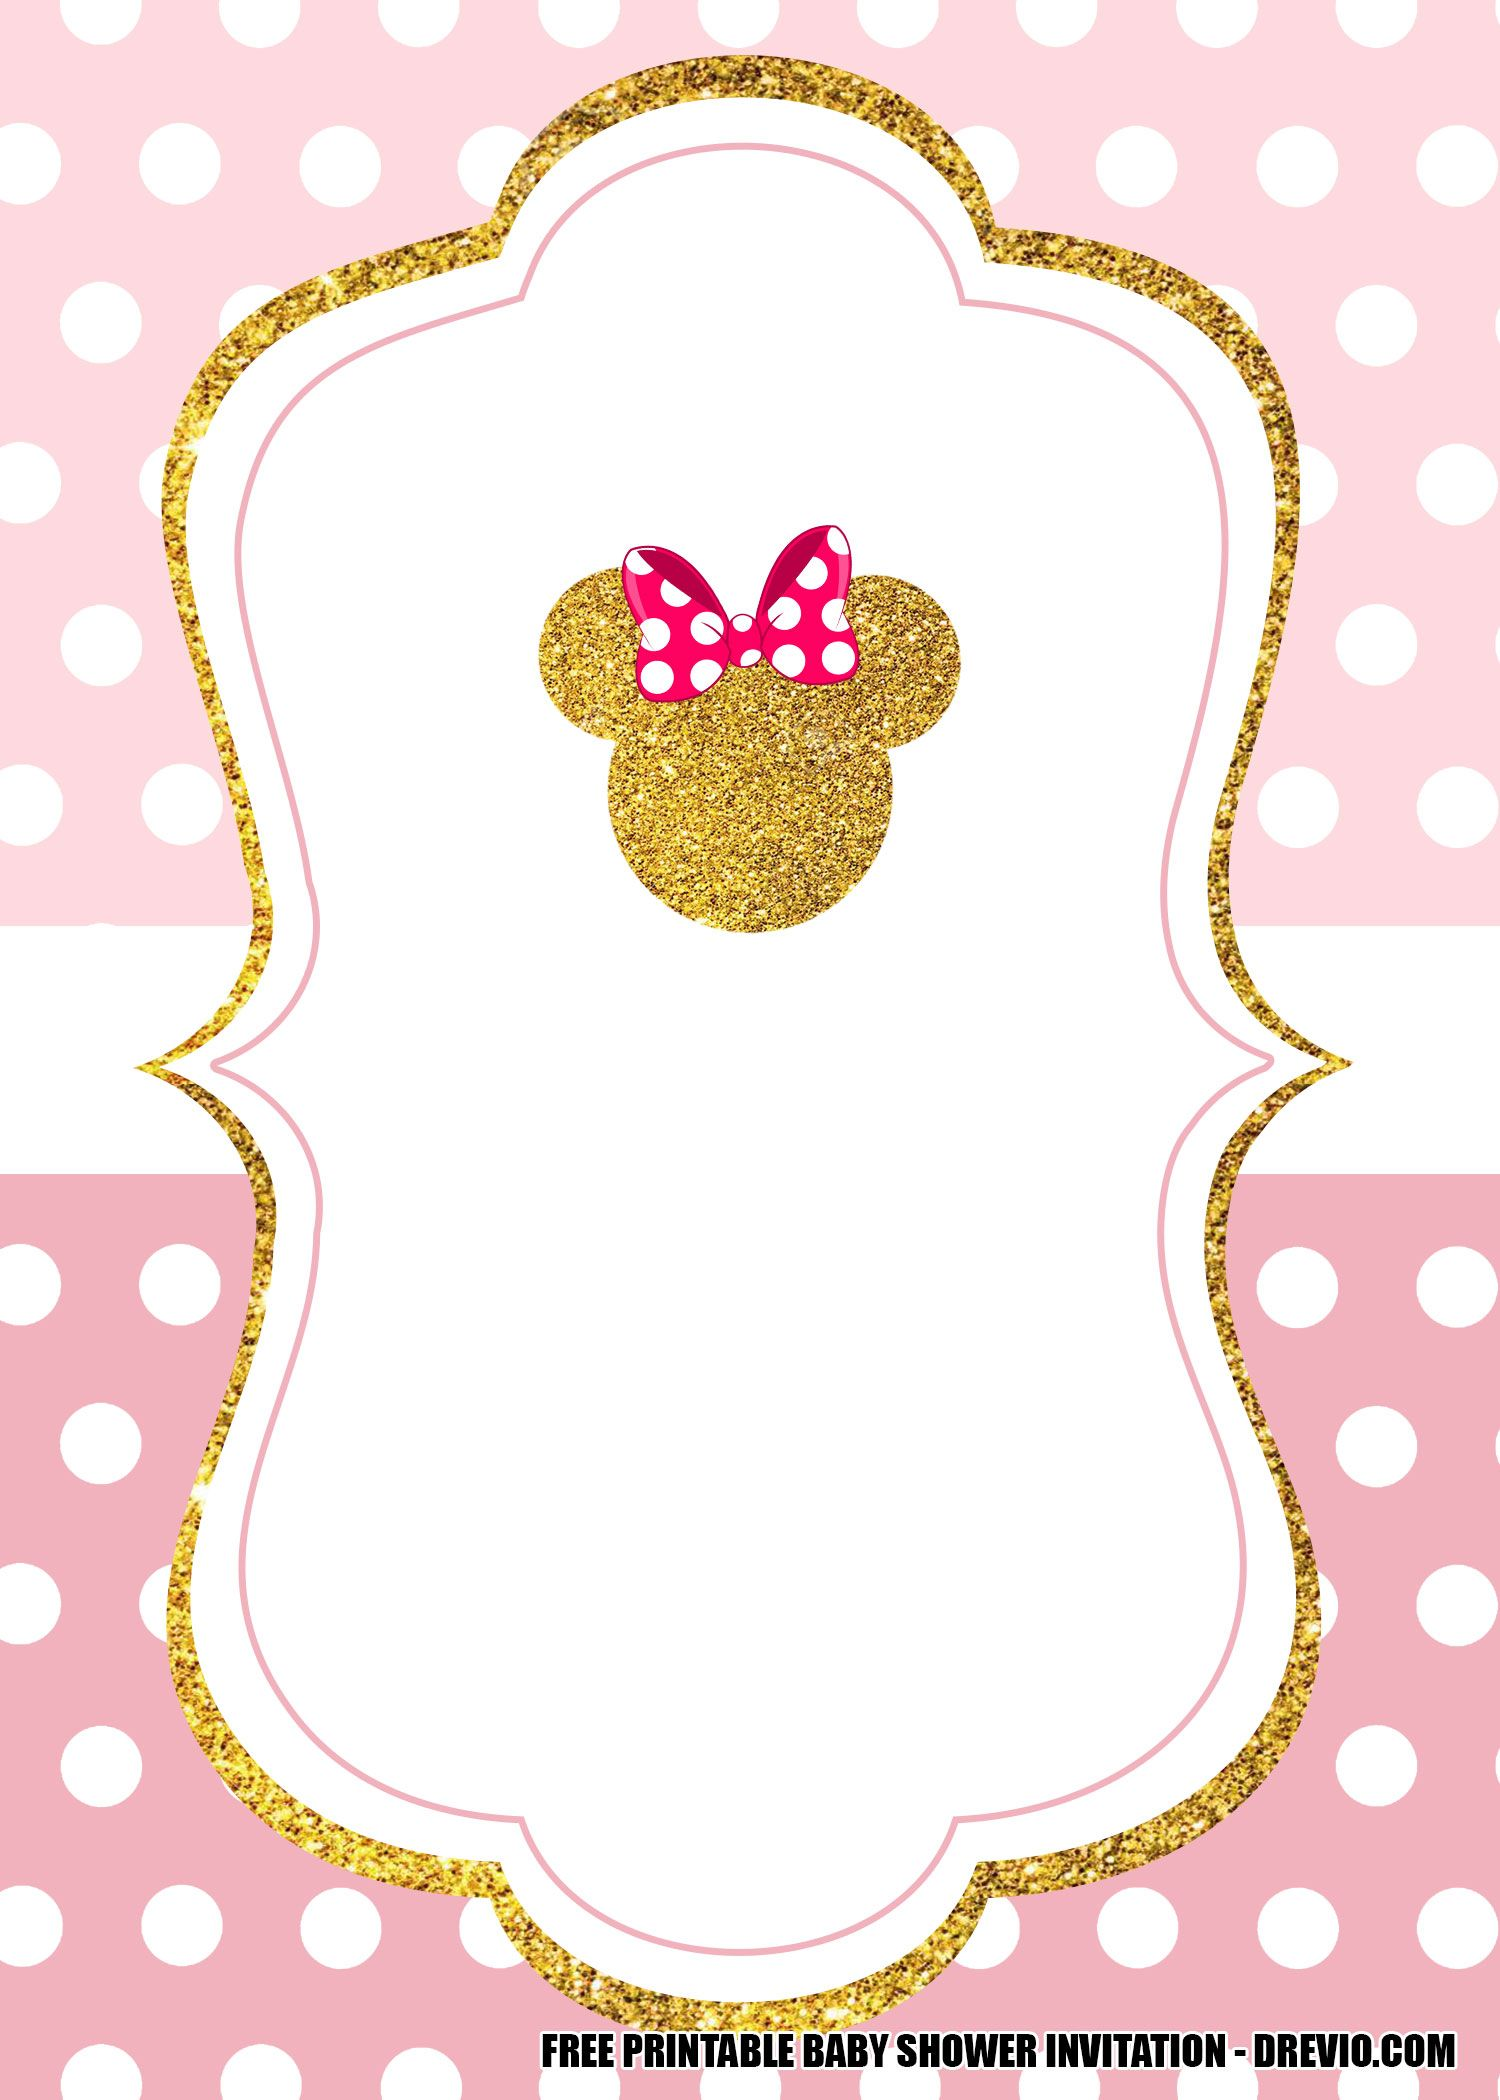 Free Minnie Mouse Pink And Gold Invitation Templates Drevio Minnie Mouse Birthday Invitations Minnie Mouse Invitations Free Baby Shower Invitations